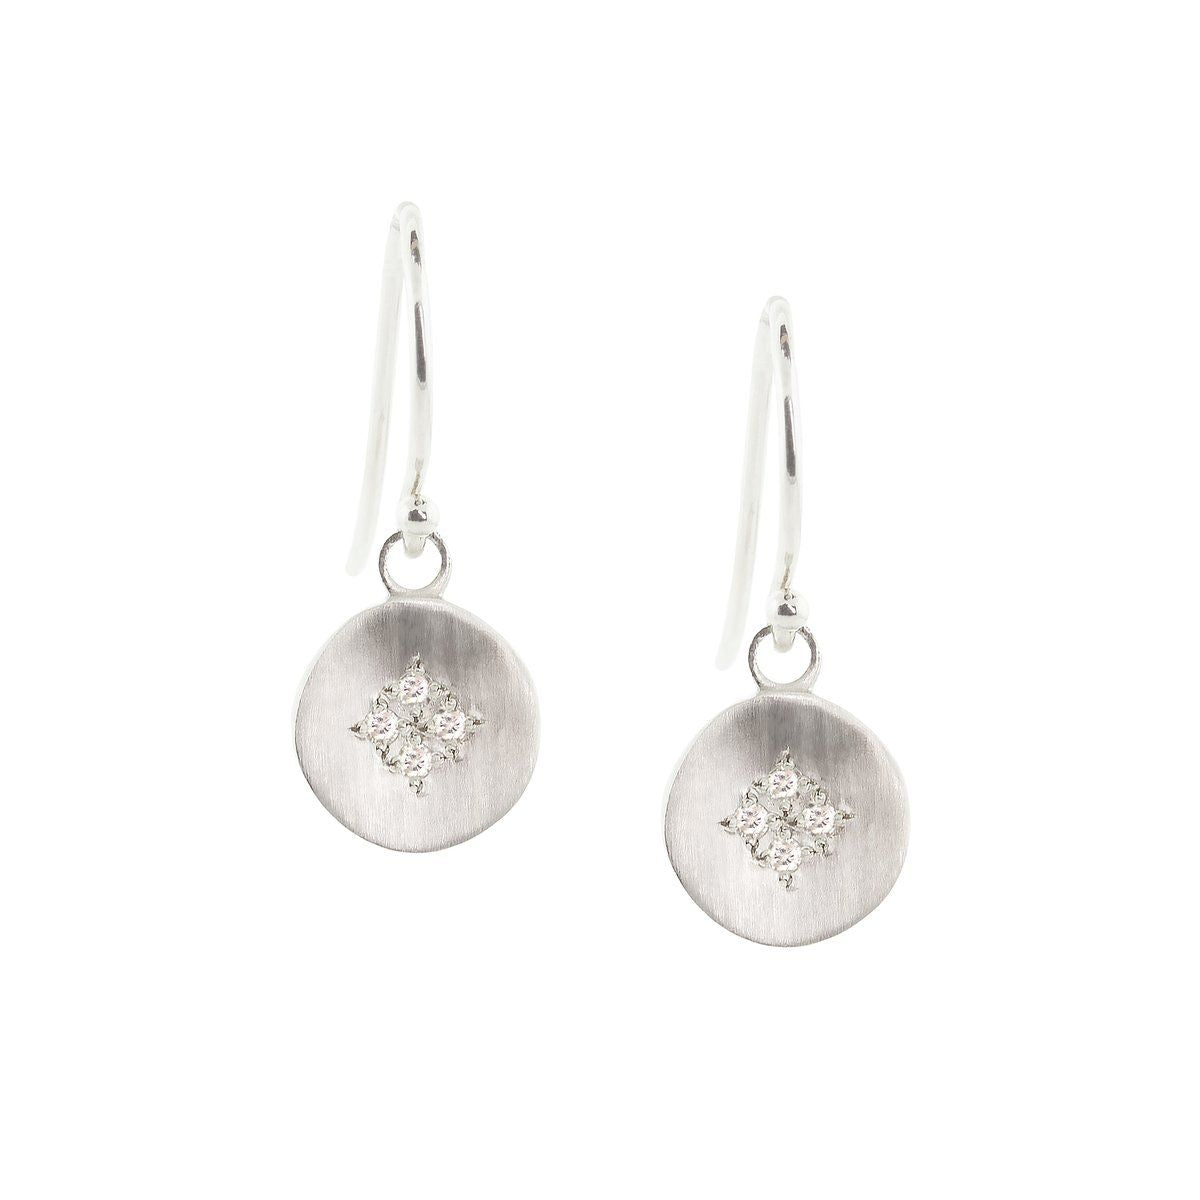 Four Star Wave Charm Earrings with Diamonds | Art + Soul Gallery